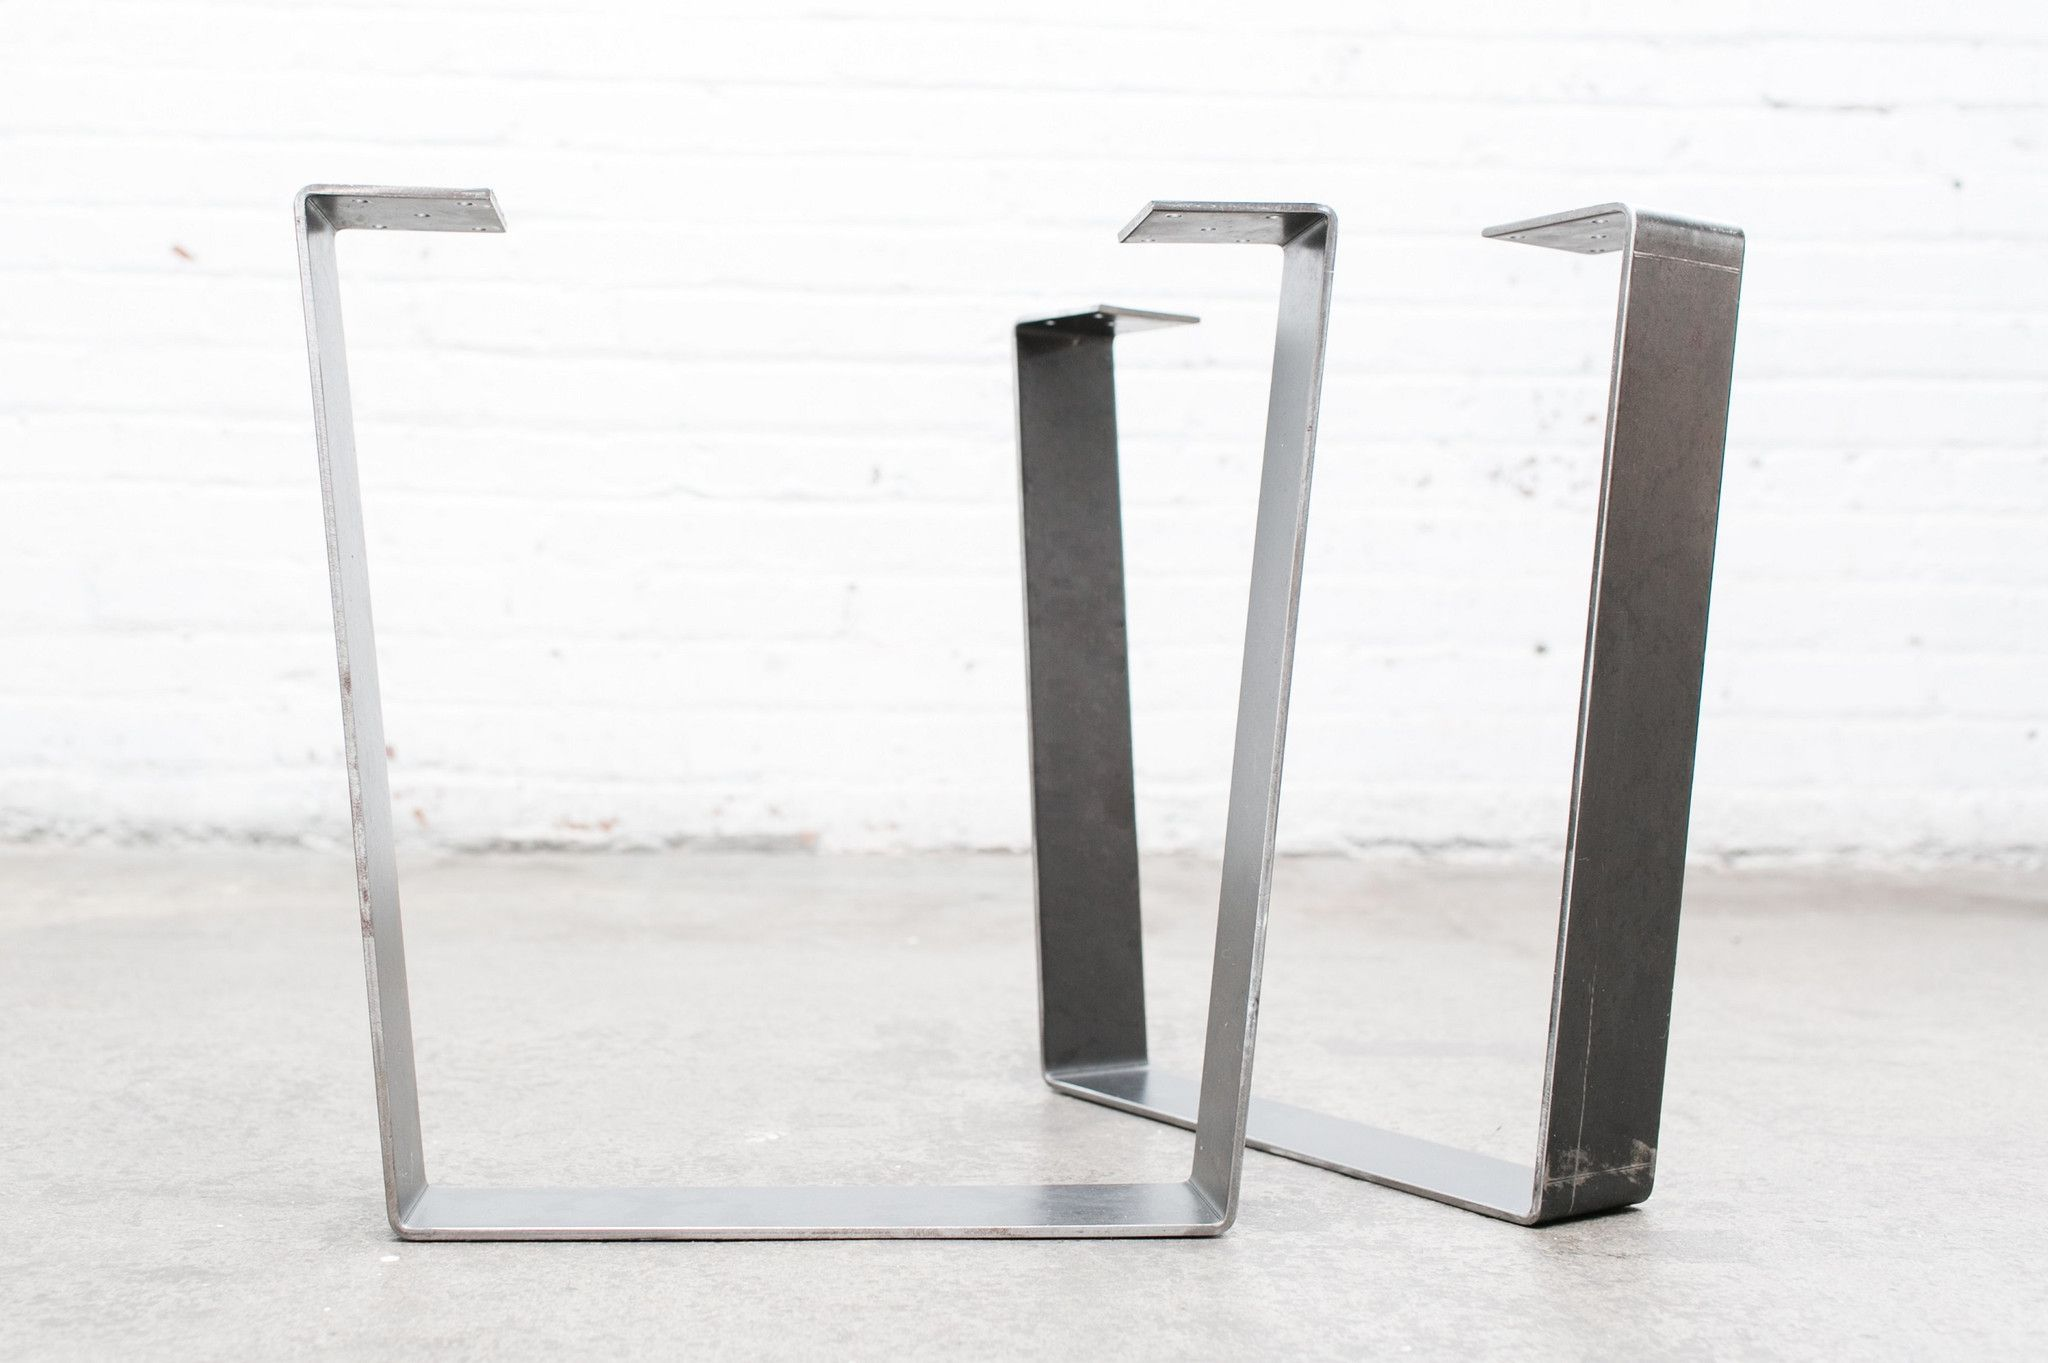 The Flat Steel Leg compliments industrial and modern